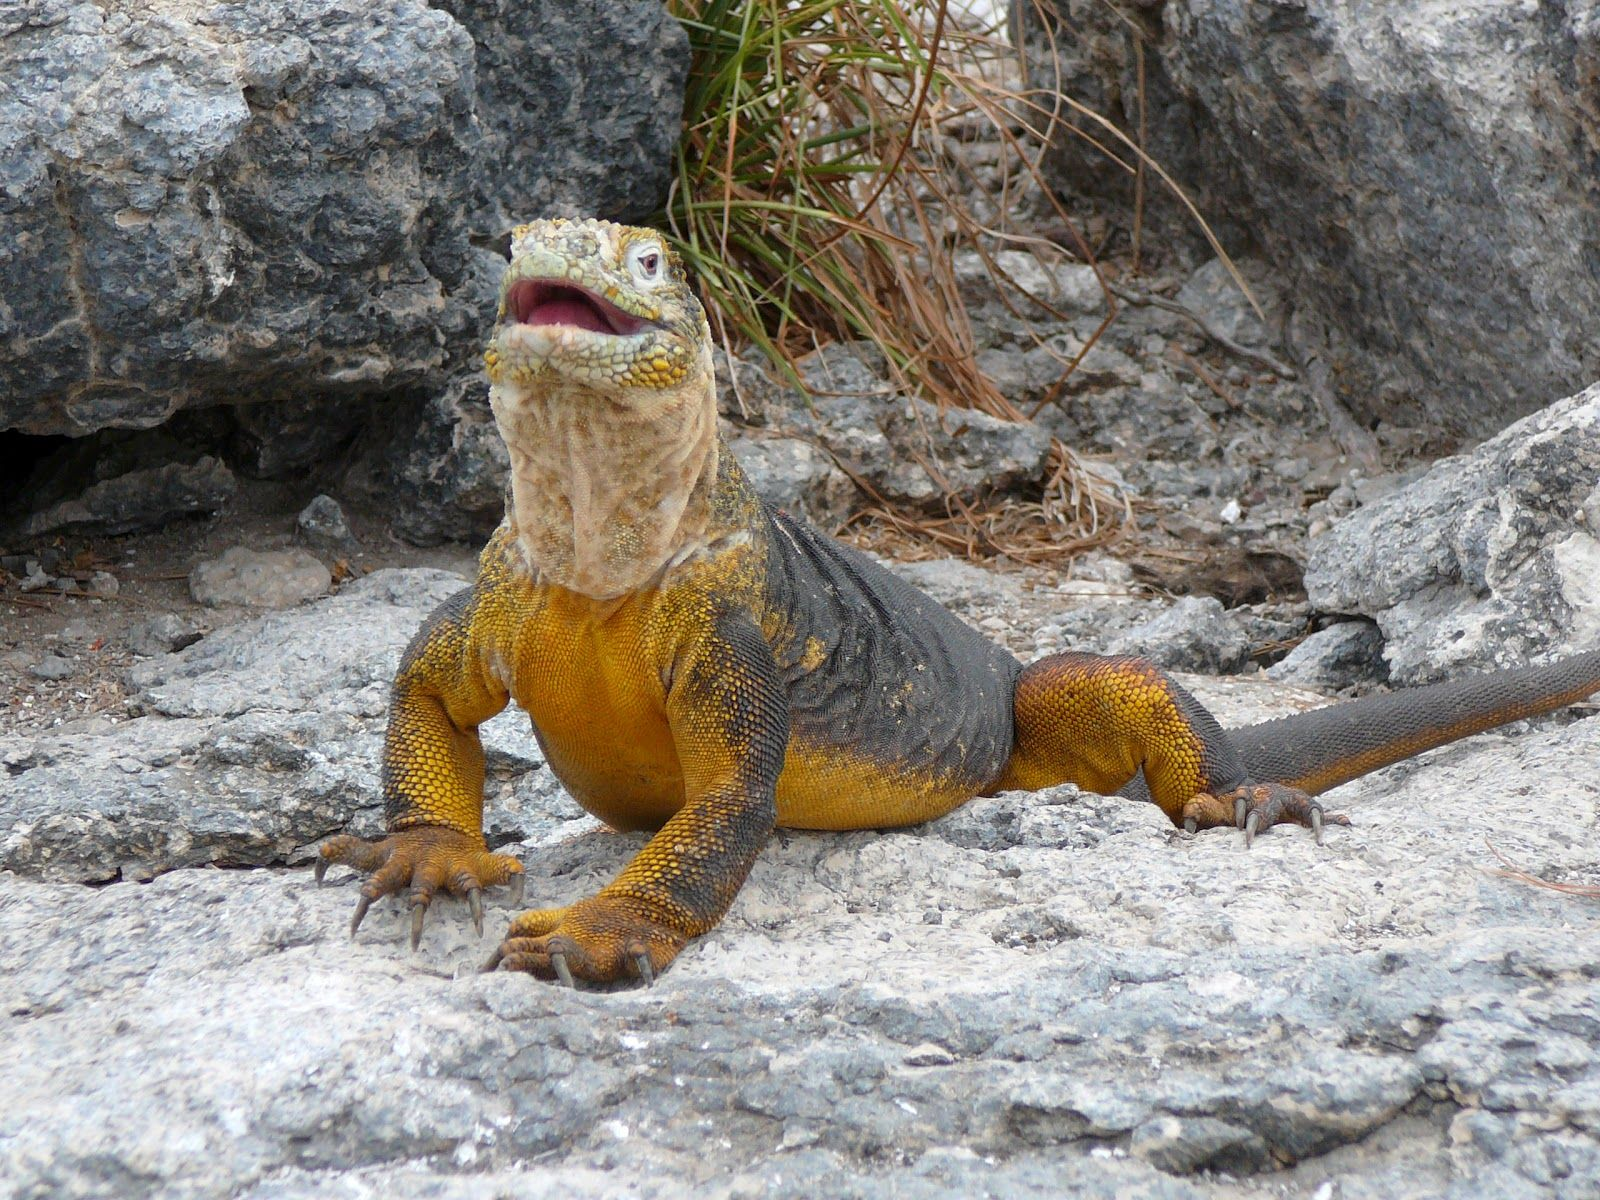 The Galapagos Islands Are A Protected Group Of Islands Off The Coast Of Equador And Have Been